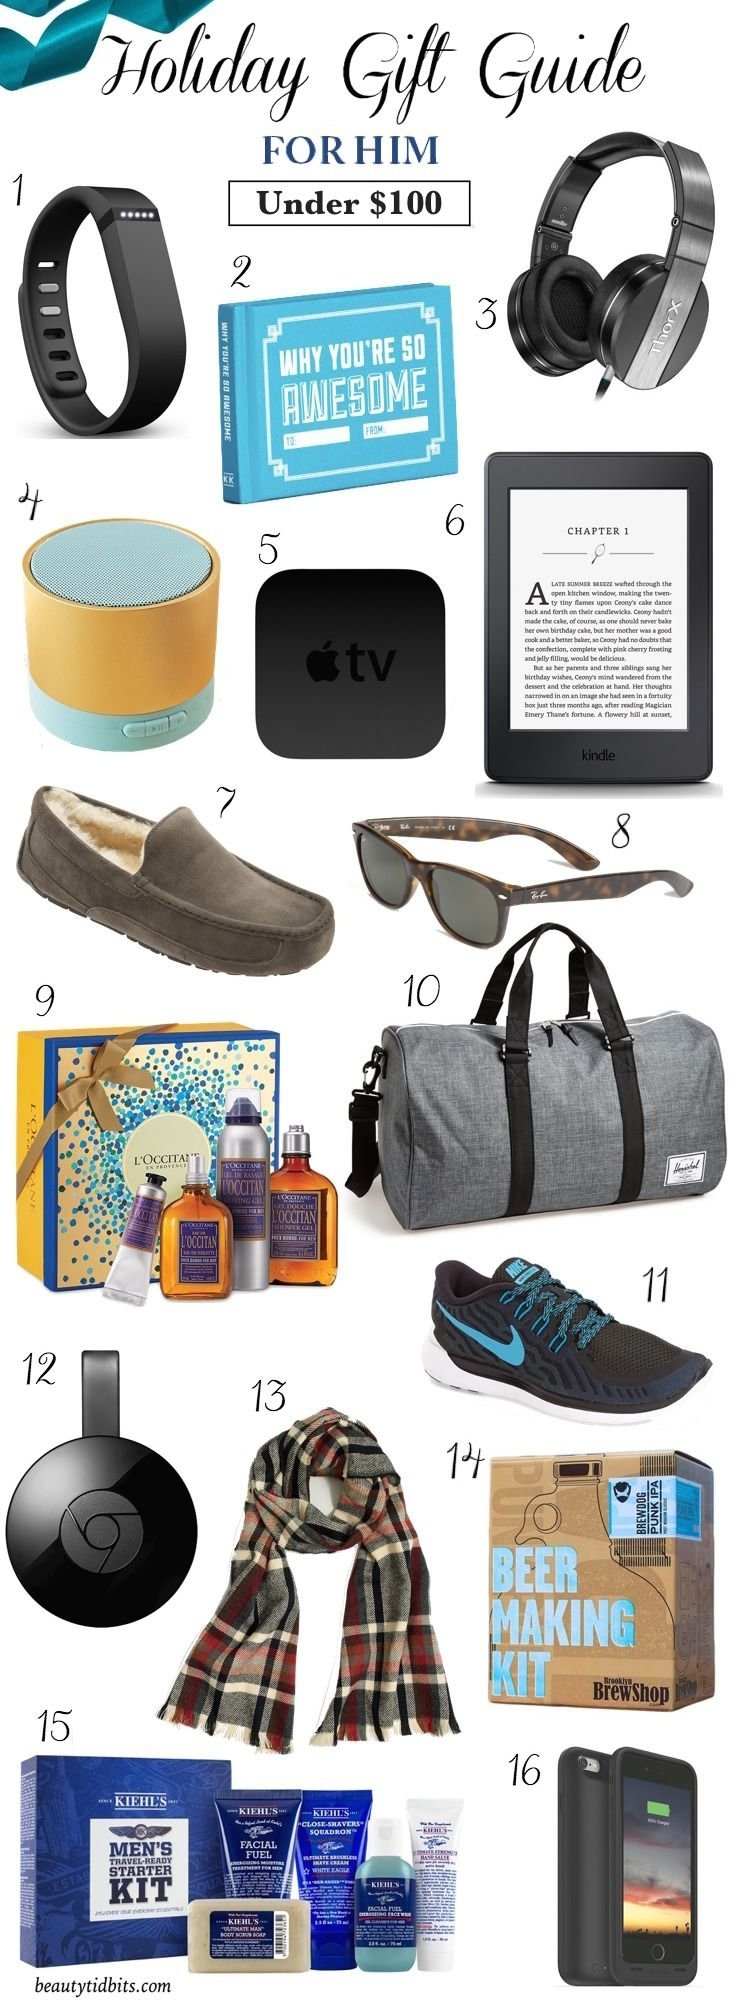 10 Pretty Christmas Gifts Ideas For Men 126 best holiday gift giving images on pinterest christmas 9 2020